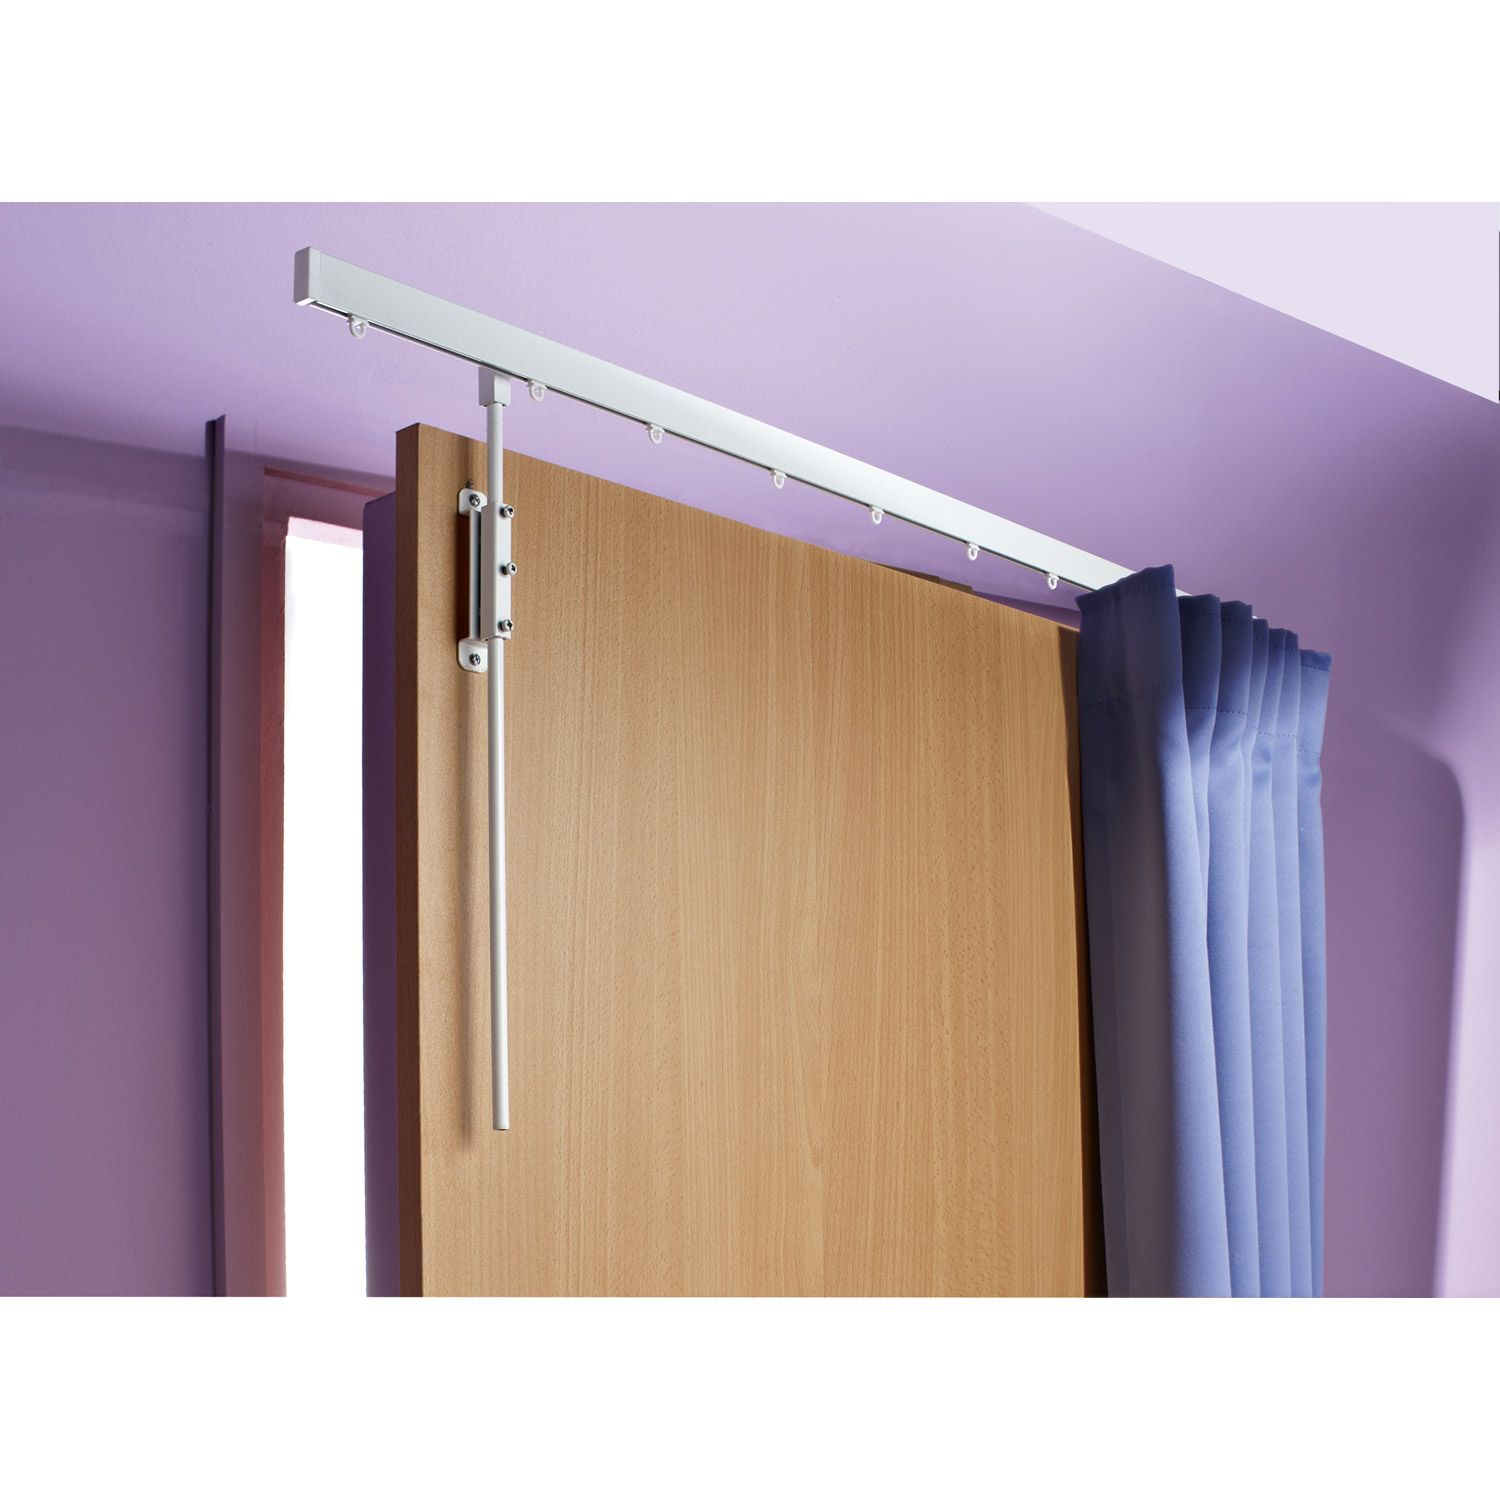 Tringle rideau pour la porte d entr e 28e chez leroy for Tringle porte d entree